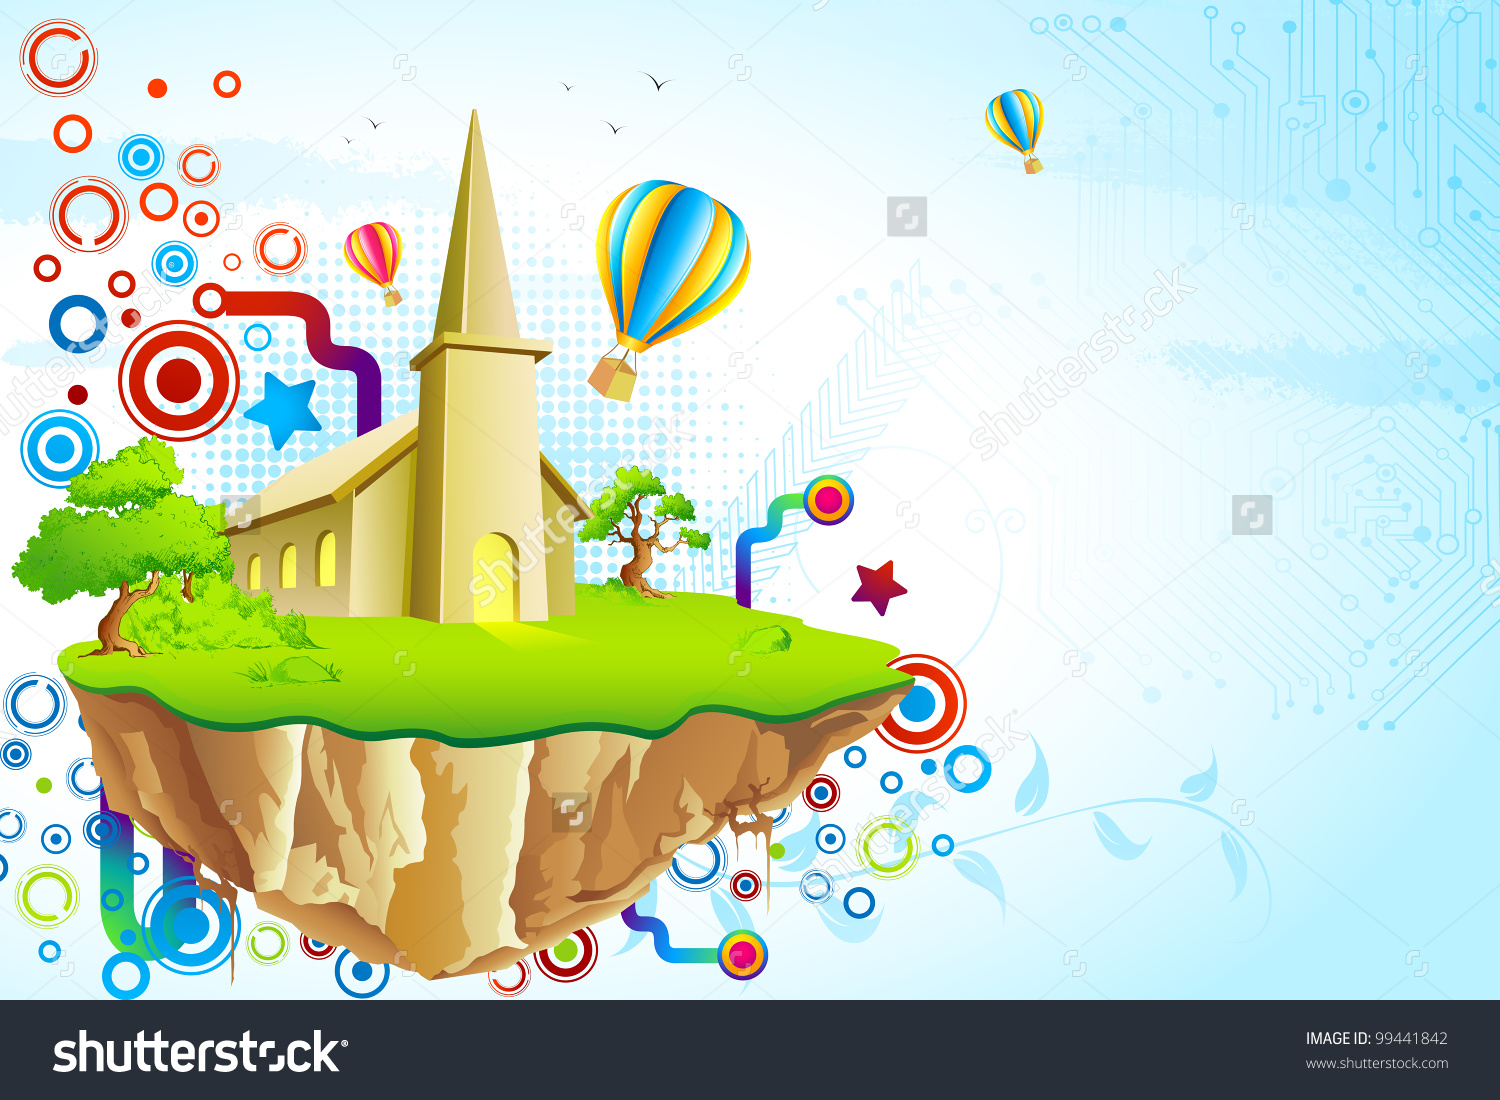 Illustration Fantasy Land House Surrounded By Stock Vector.